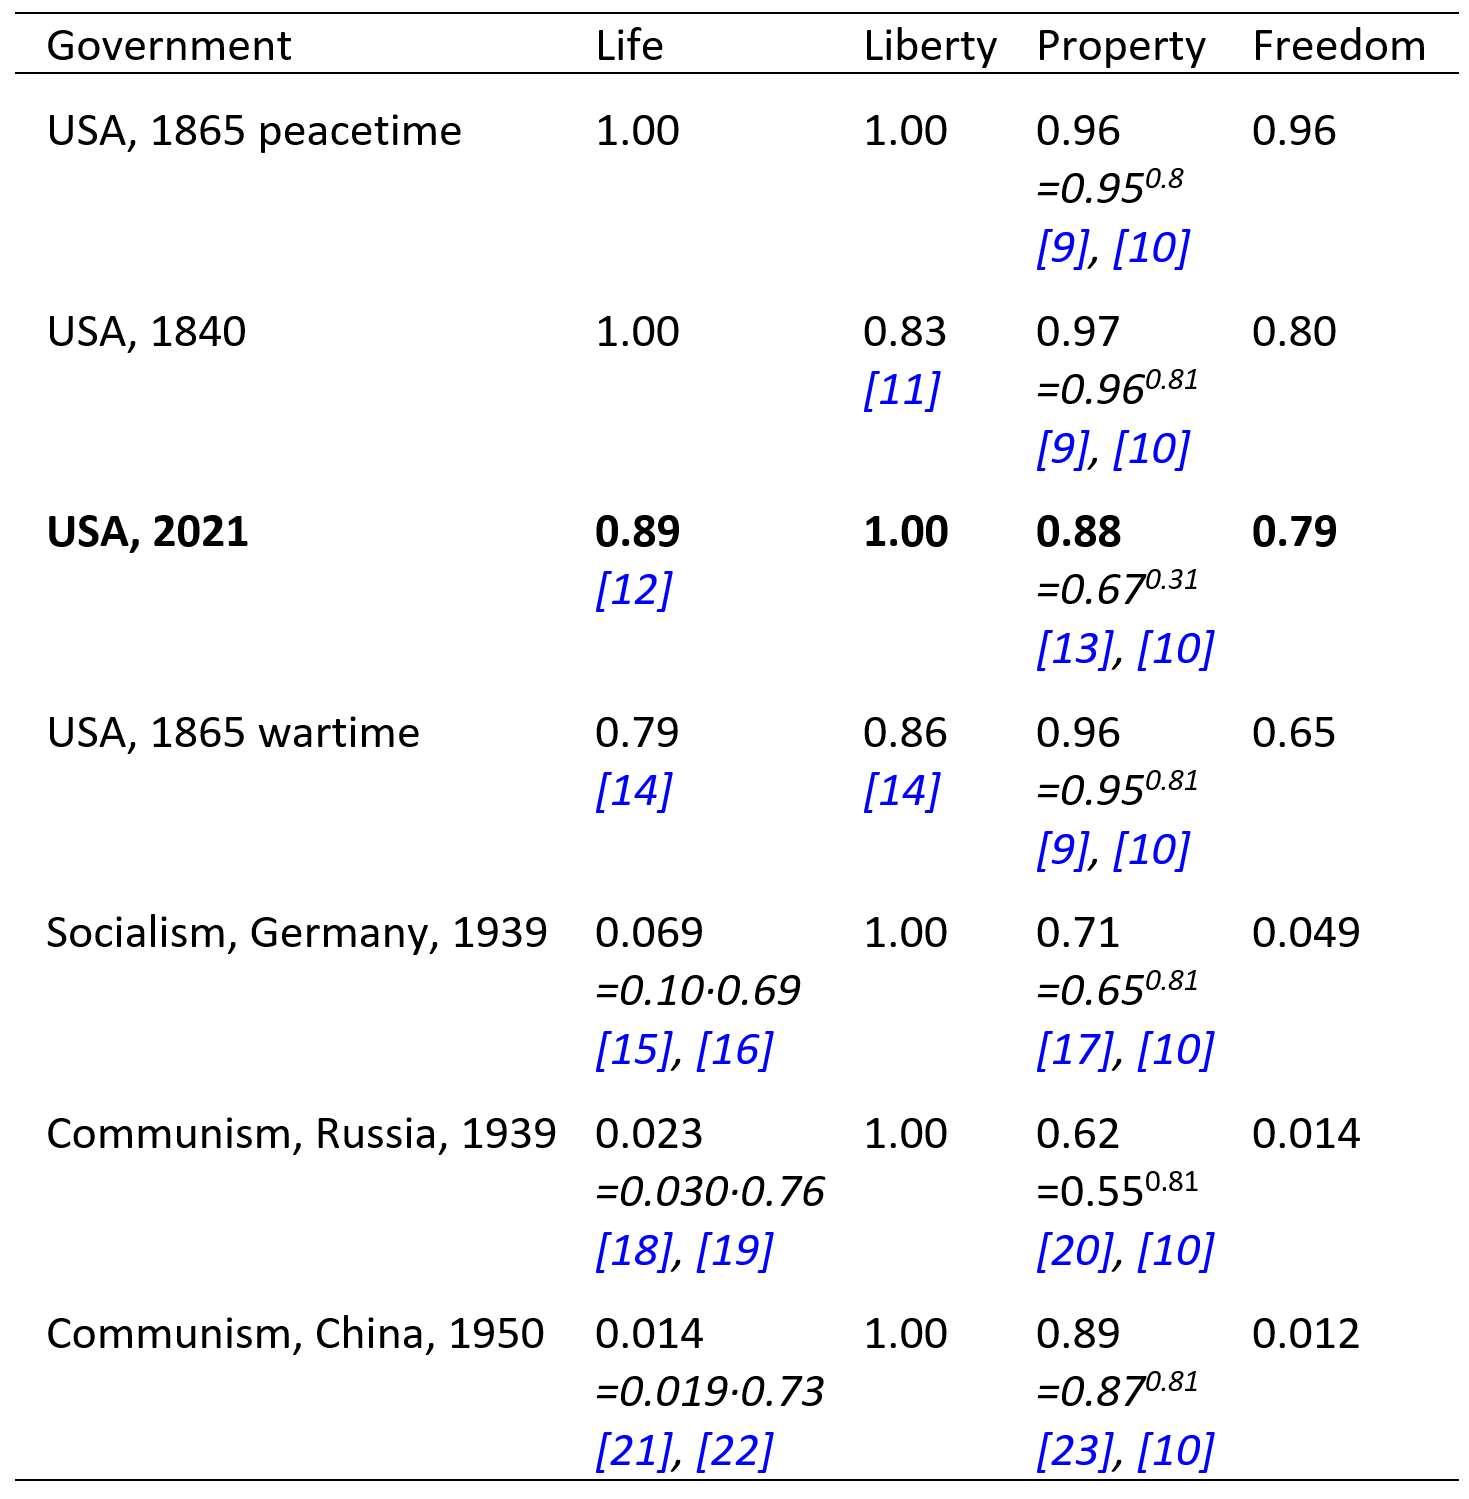 Table 2. Under crony socialism, rights to life and property in the USA have fallen.